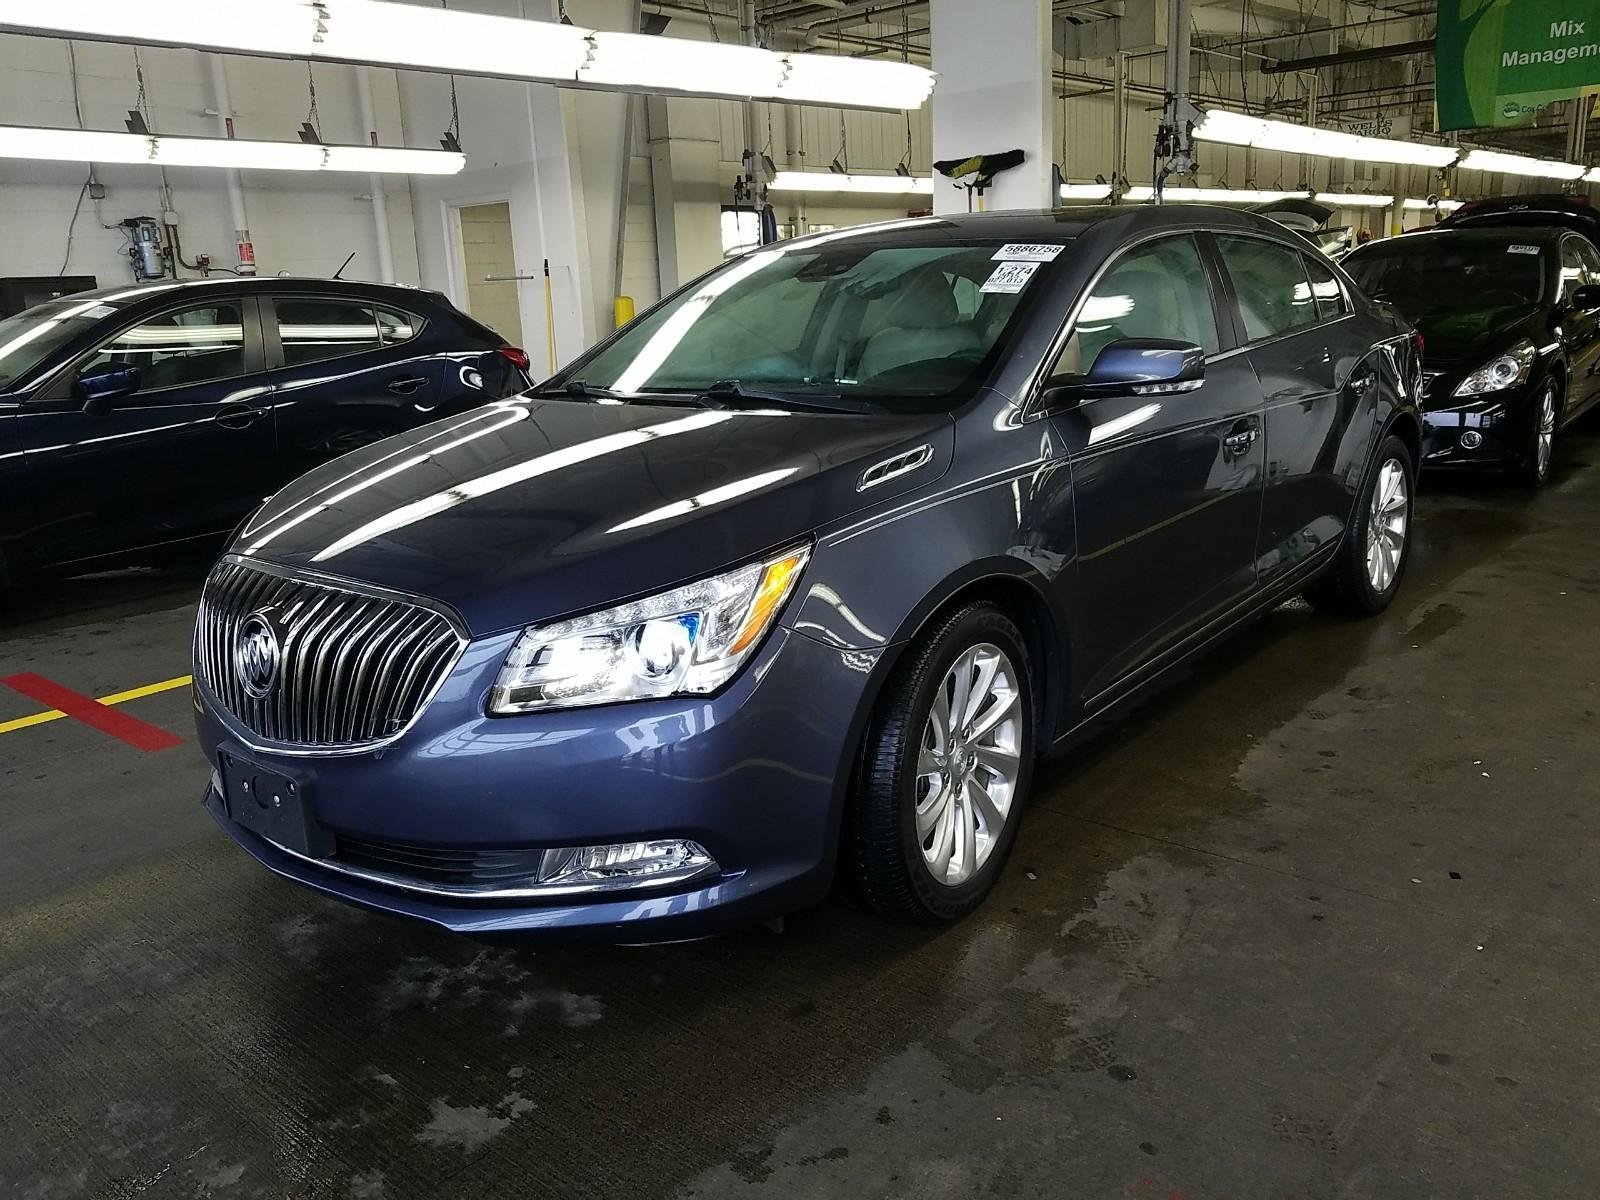 Buick LaCrosse: Folding Mirrors